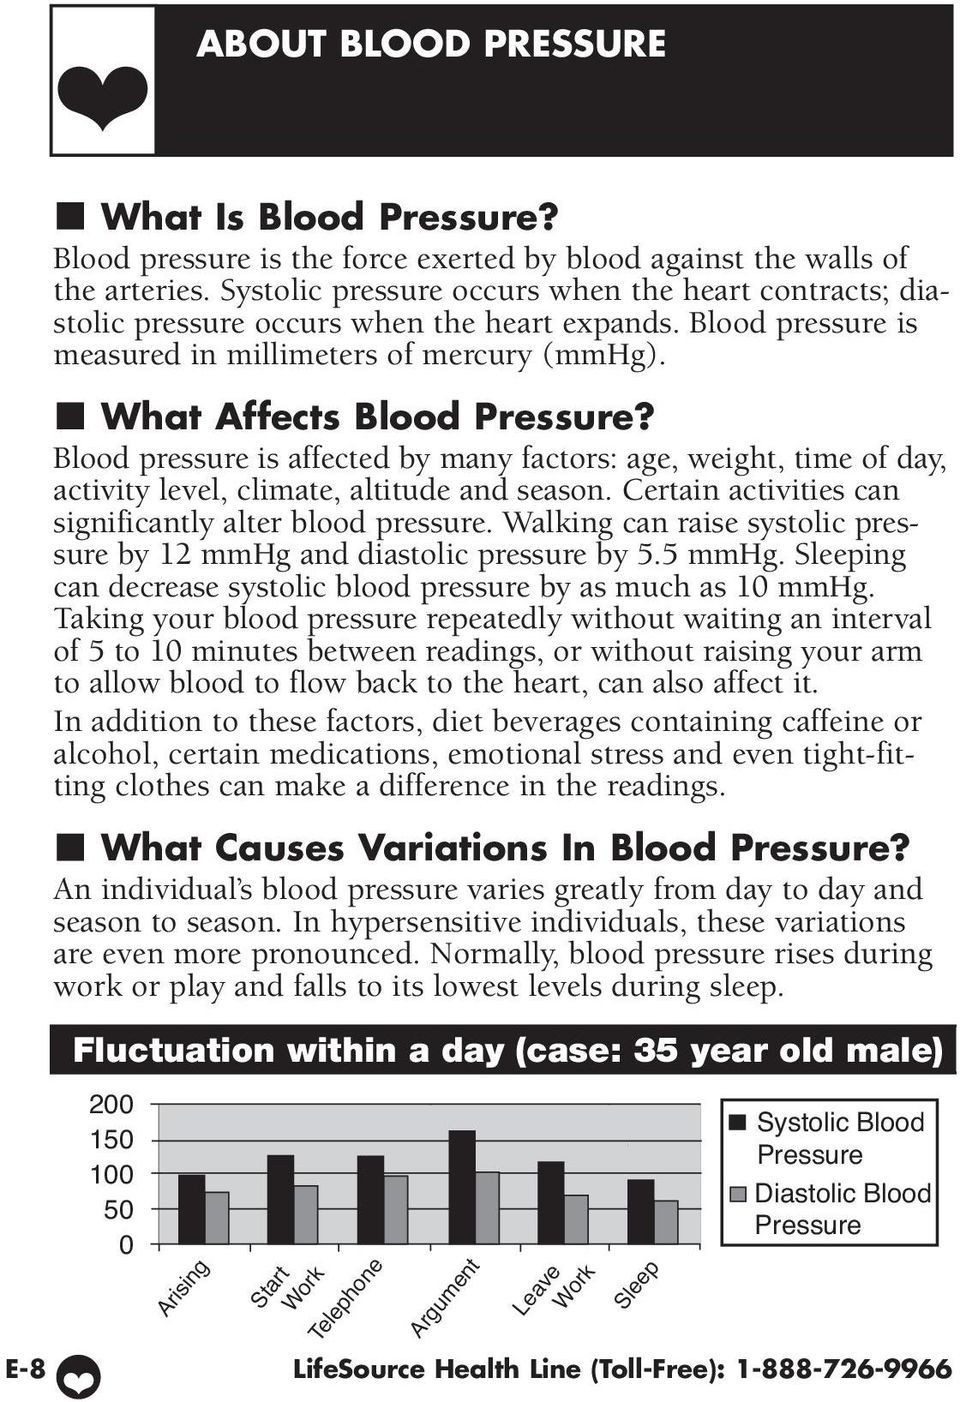 Blood pressure is affected by many factors: age, weight, time of day, activity level, climate, altitude and season. Certain activities can significantly alter blood pressure.